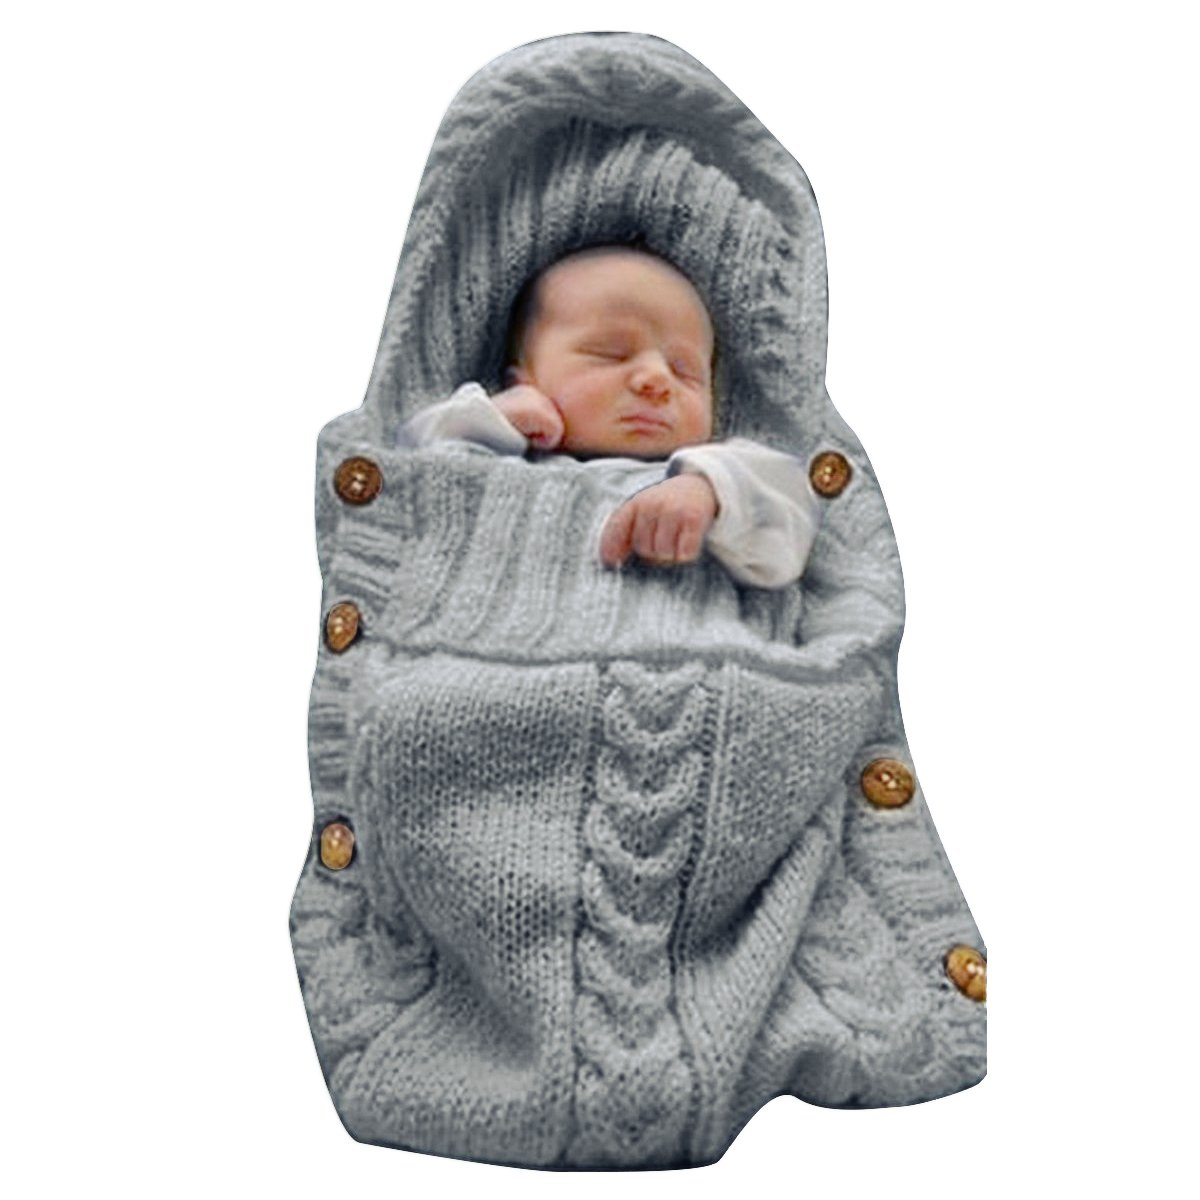 XMWEALTHY Newborn Baby Wrap Swaddle Blanket Knit Sleeping Bag Receiving Blankets Stroller Wrap for Baby(Dark Gray) (0-6 Month) by XMWEALTHY